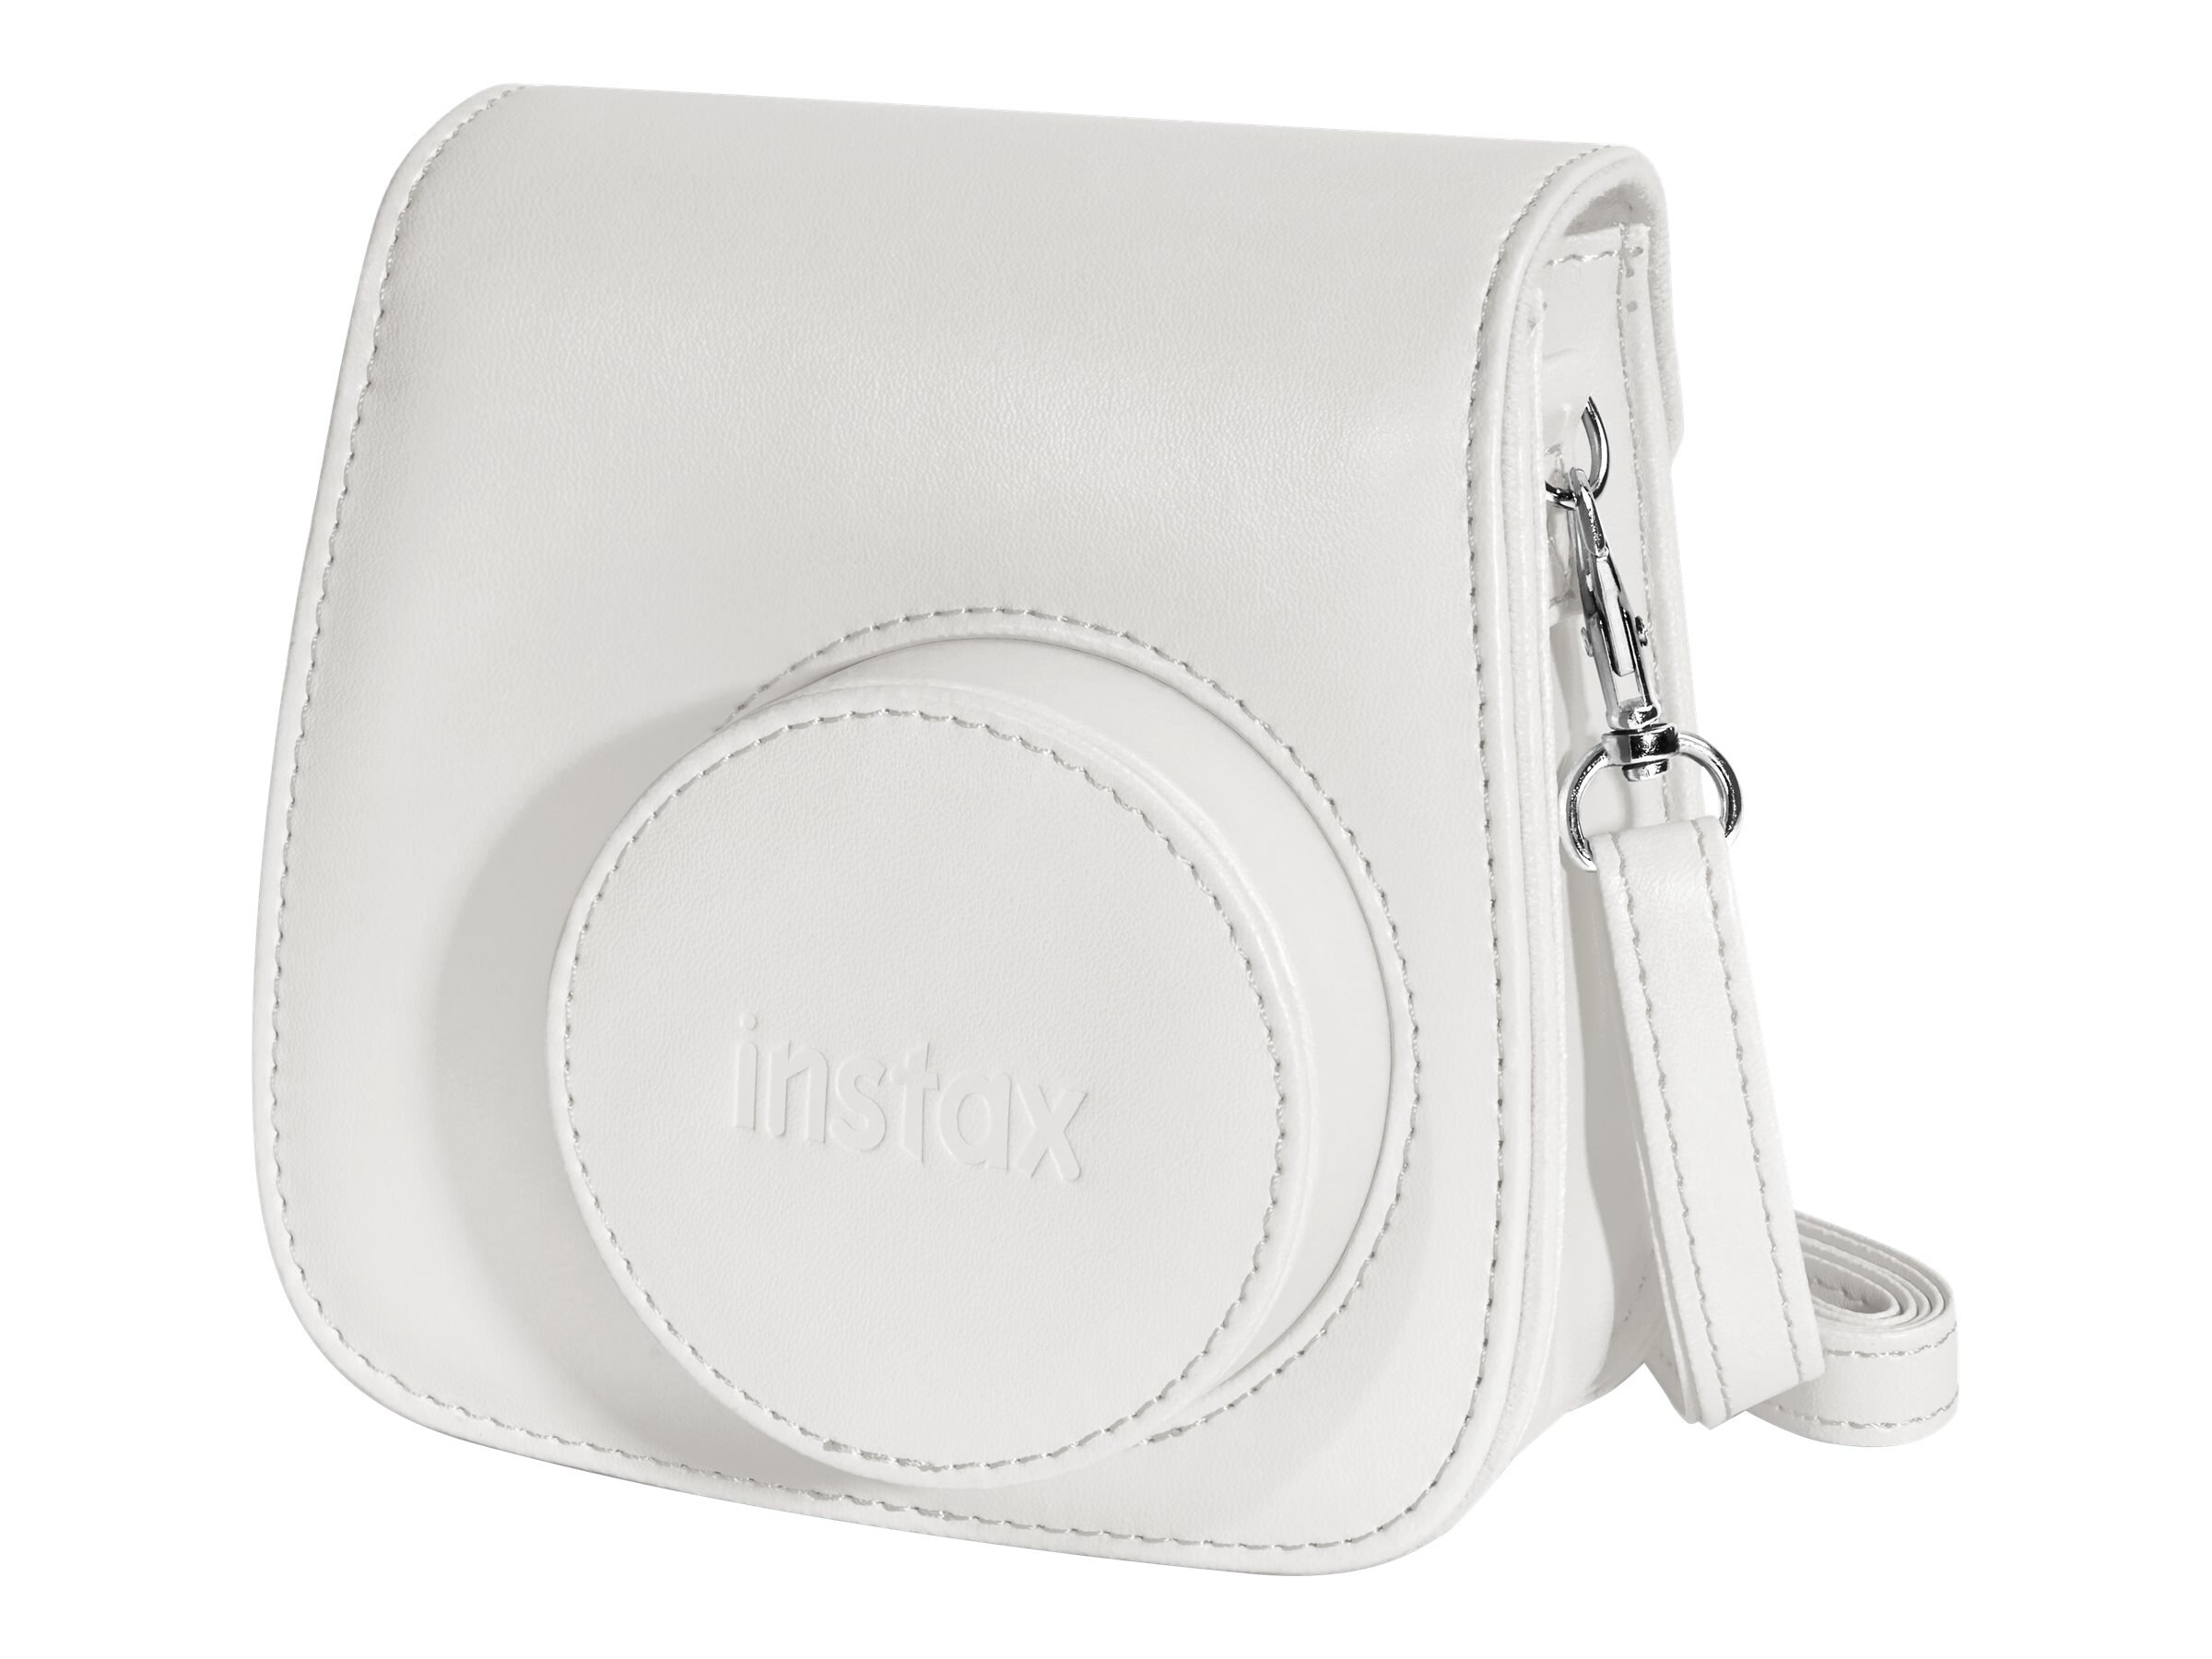 Fujifilm Instax Groovy Camera Case w  Shoulder Strap for Instax Mini 8 Instant Camera, White